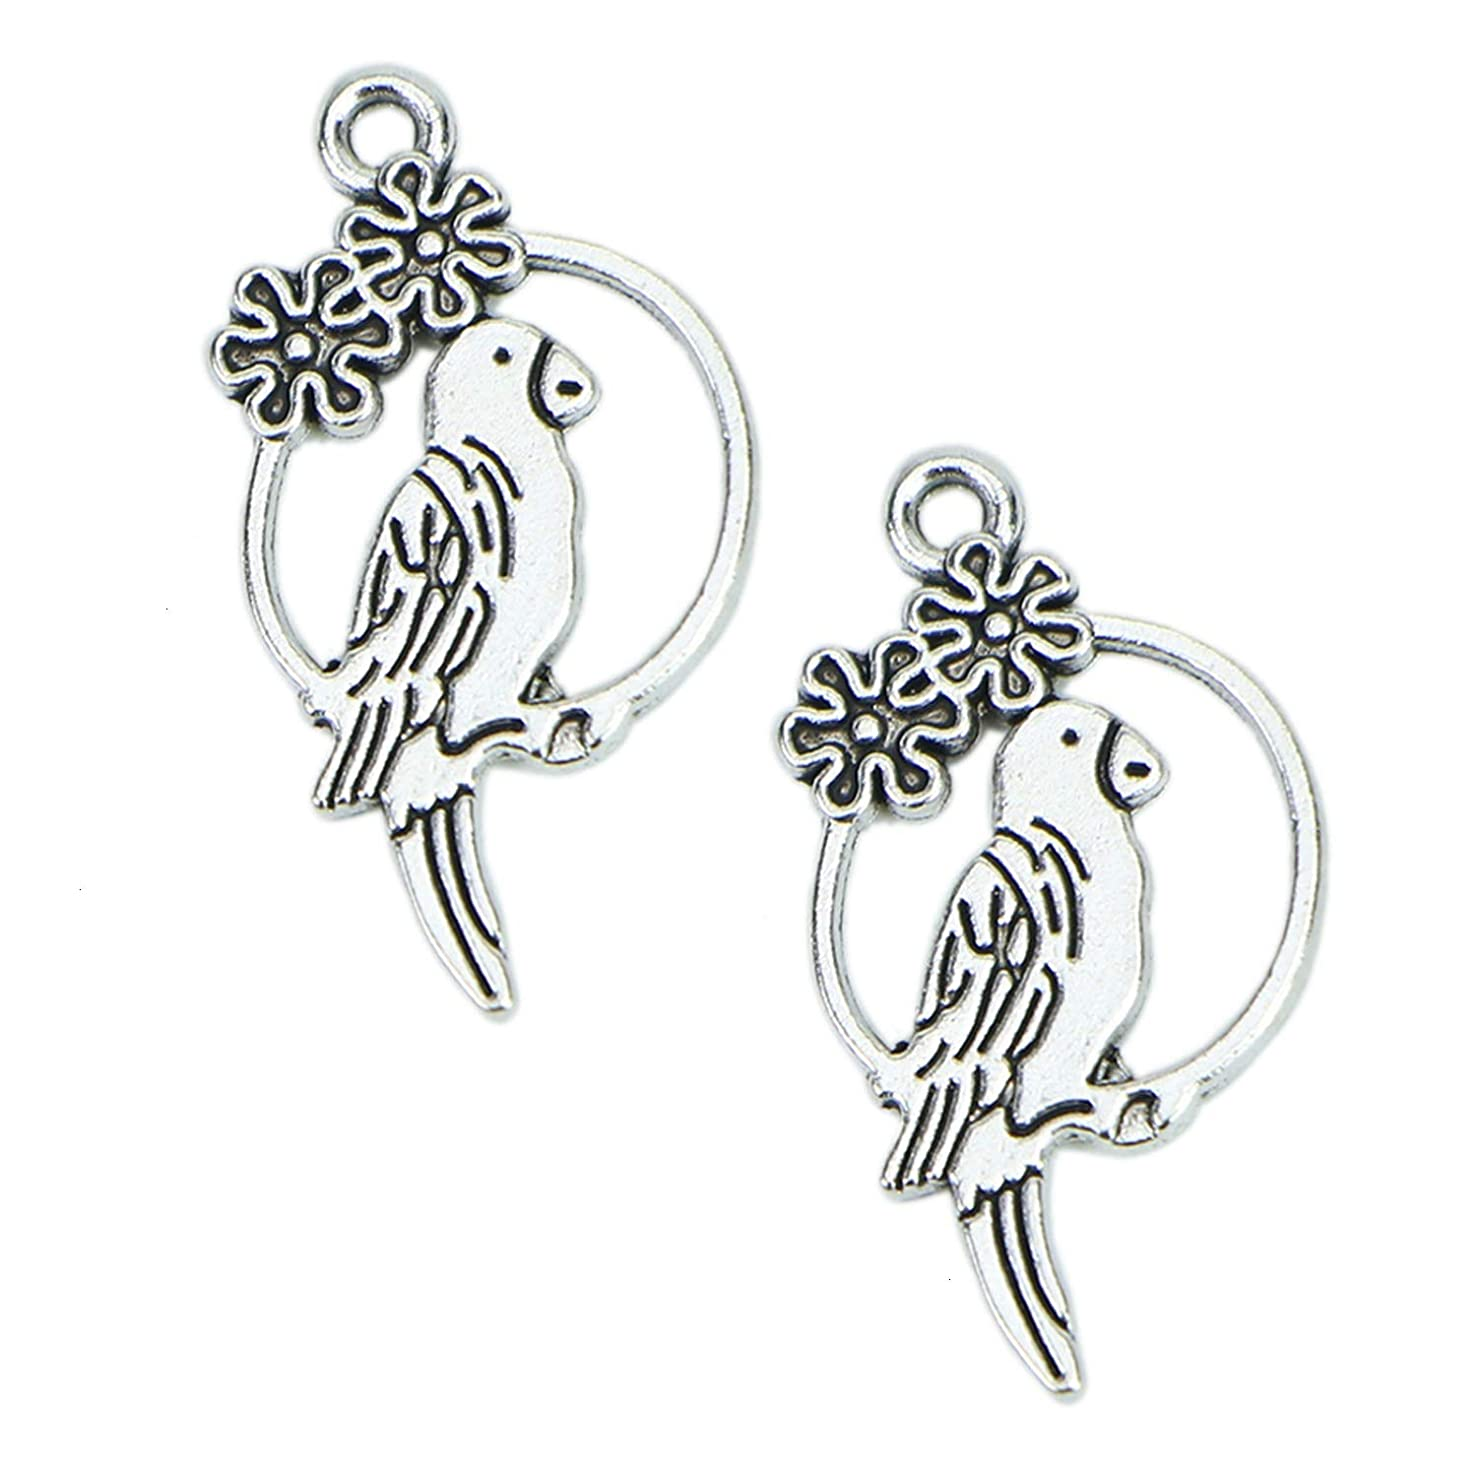 Monrocco 100Pcs Antique Silver Parrot Charms Pendants Alloy Animal Charms for Jewelry Making and Crafting